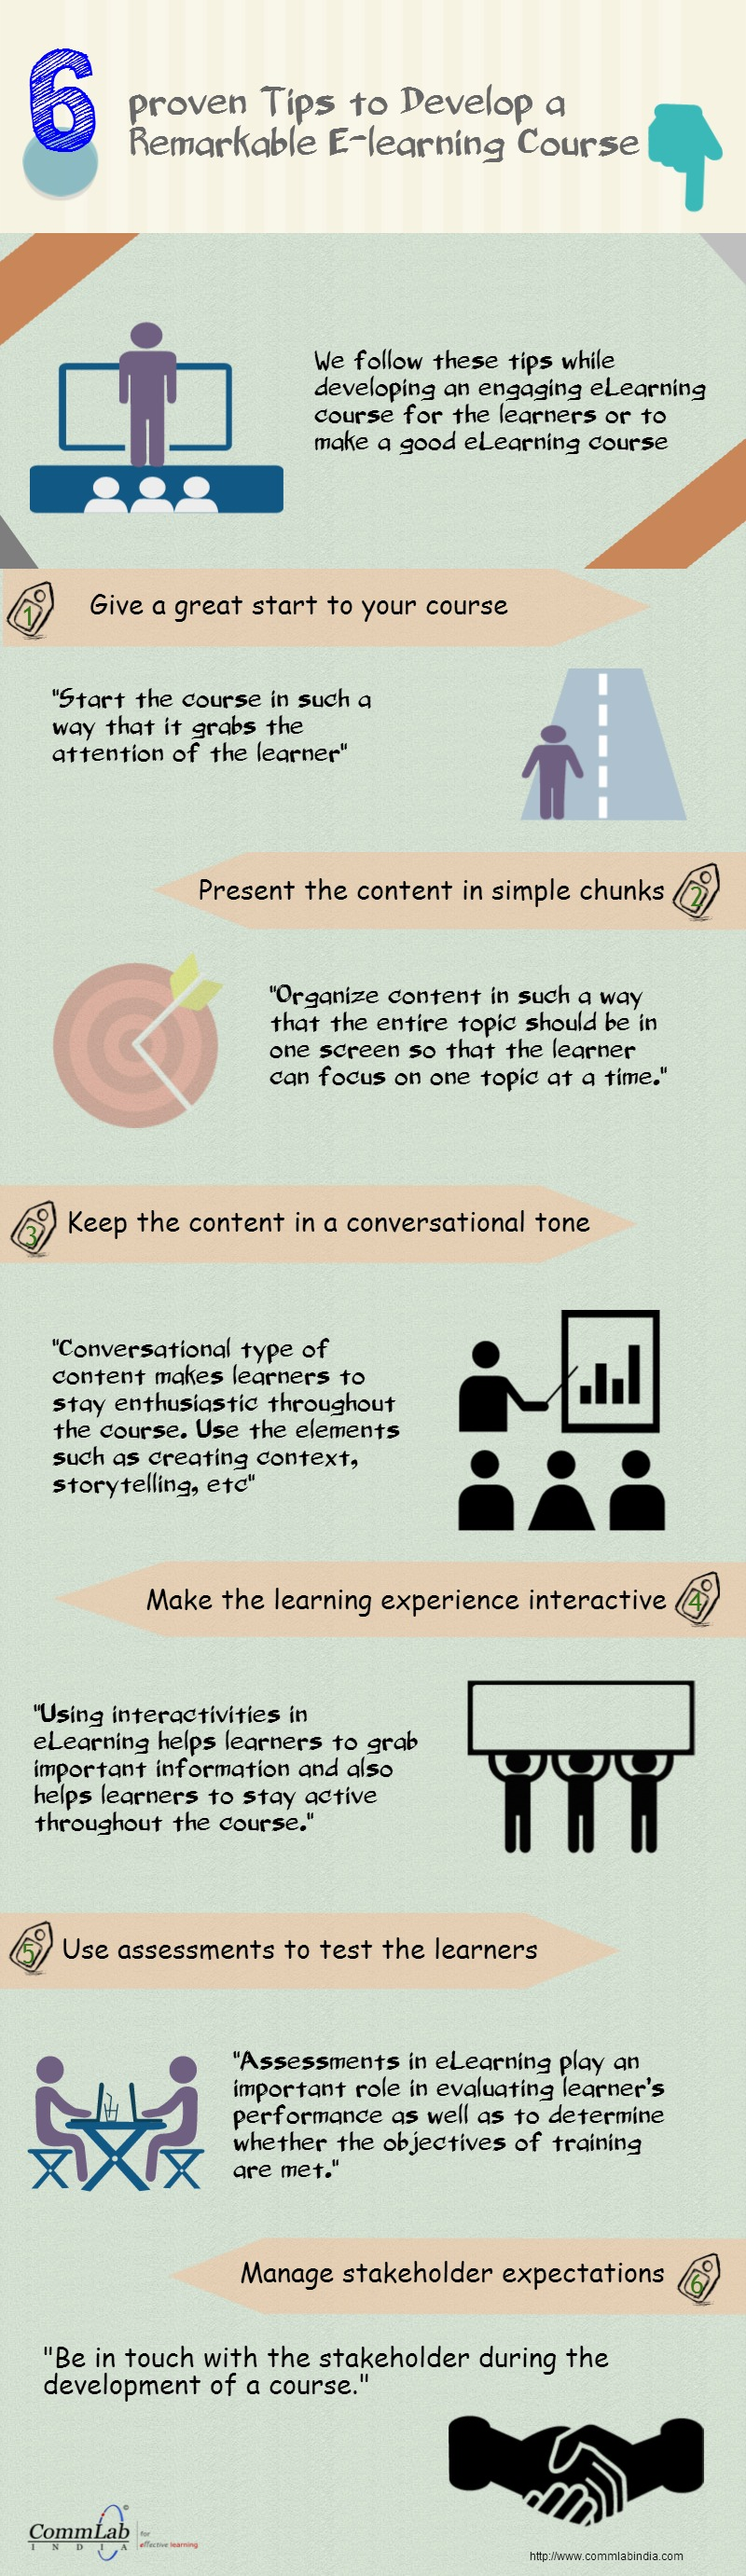 6 Proven Tips to Develop a Remarkable E-learning Course – An Infographic